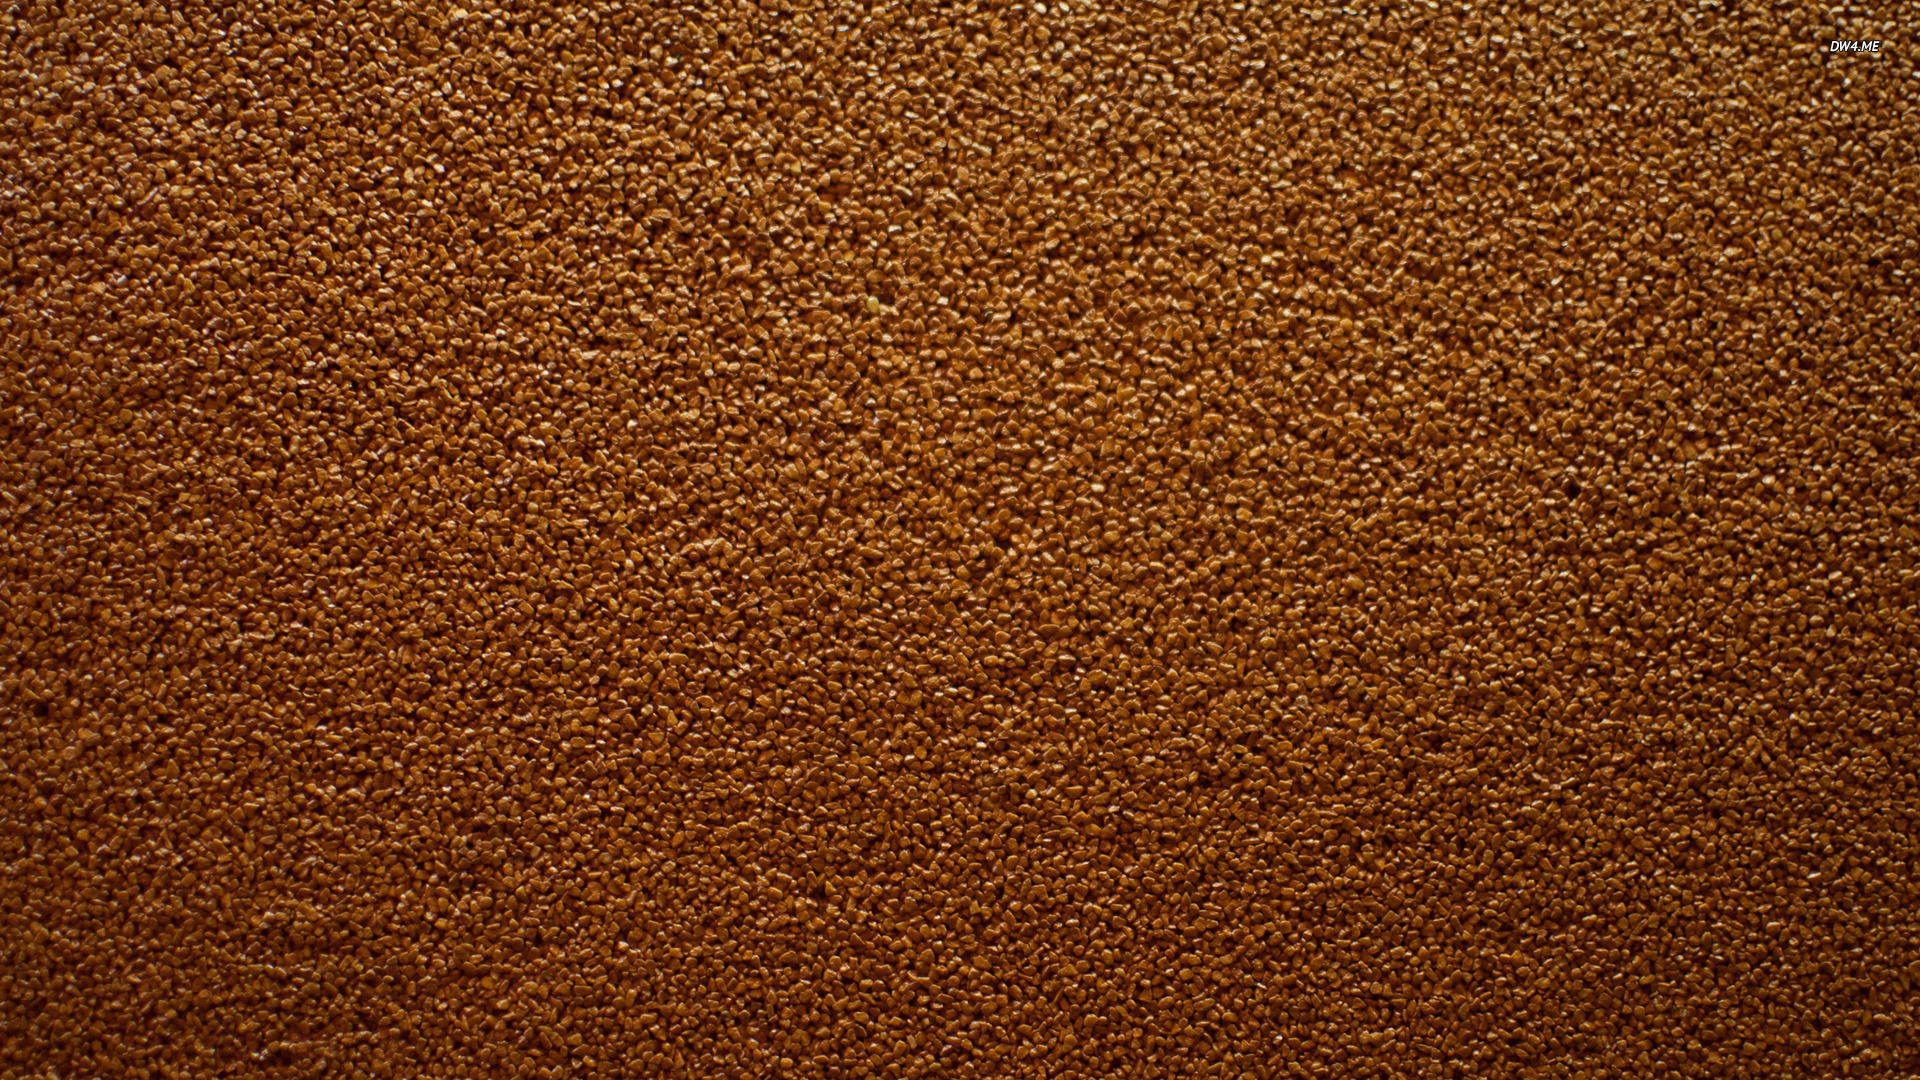 1394 Brown Wall 1920×1080 Photography Wallpaper